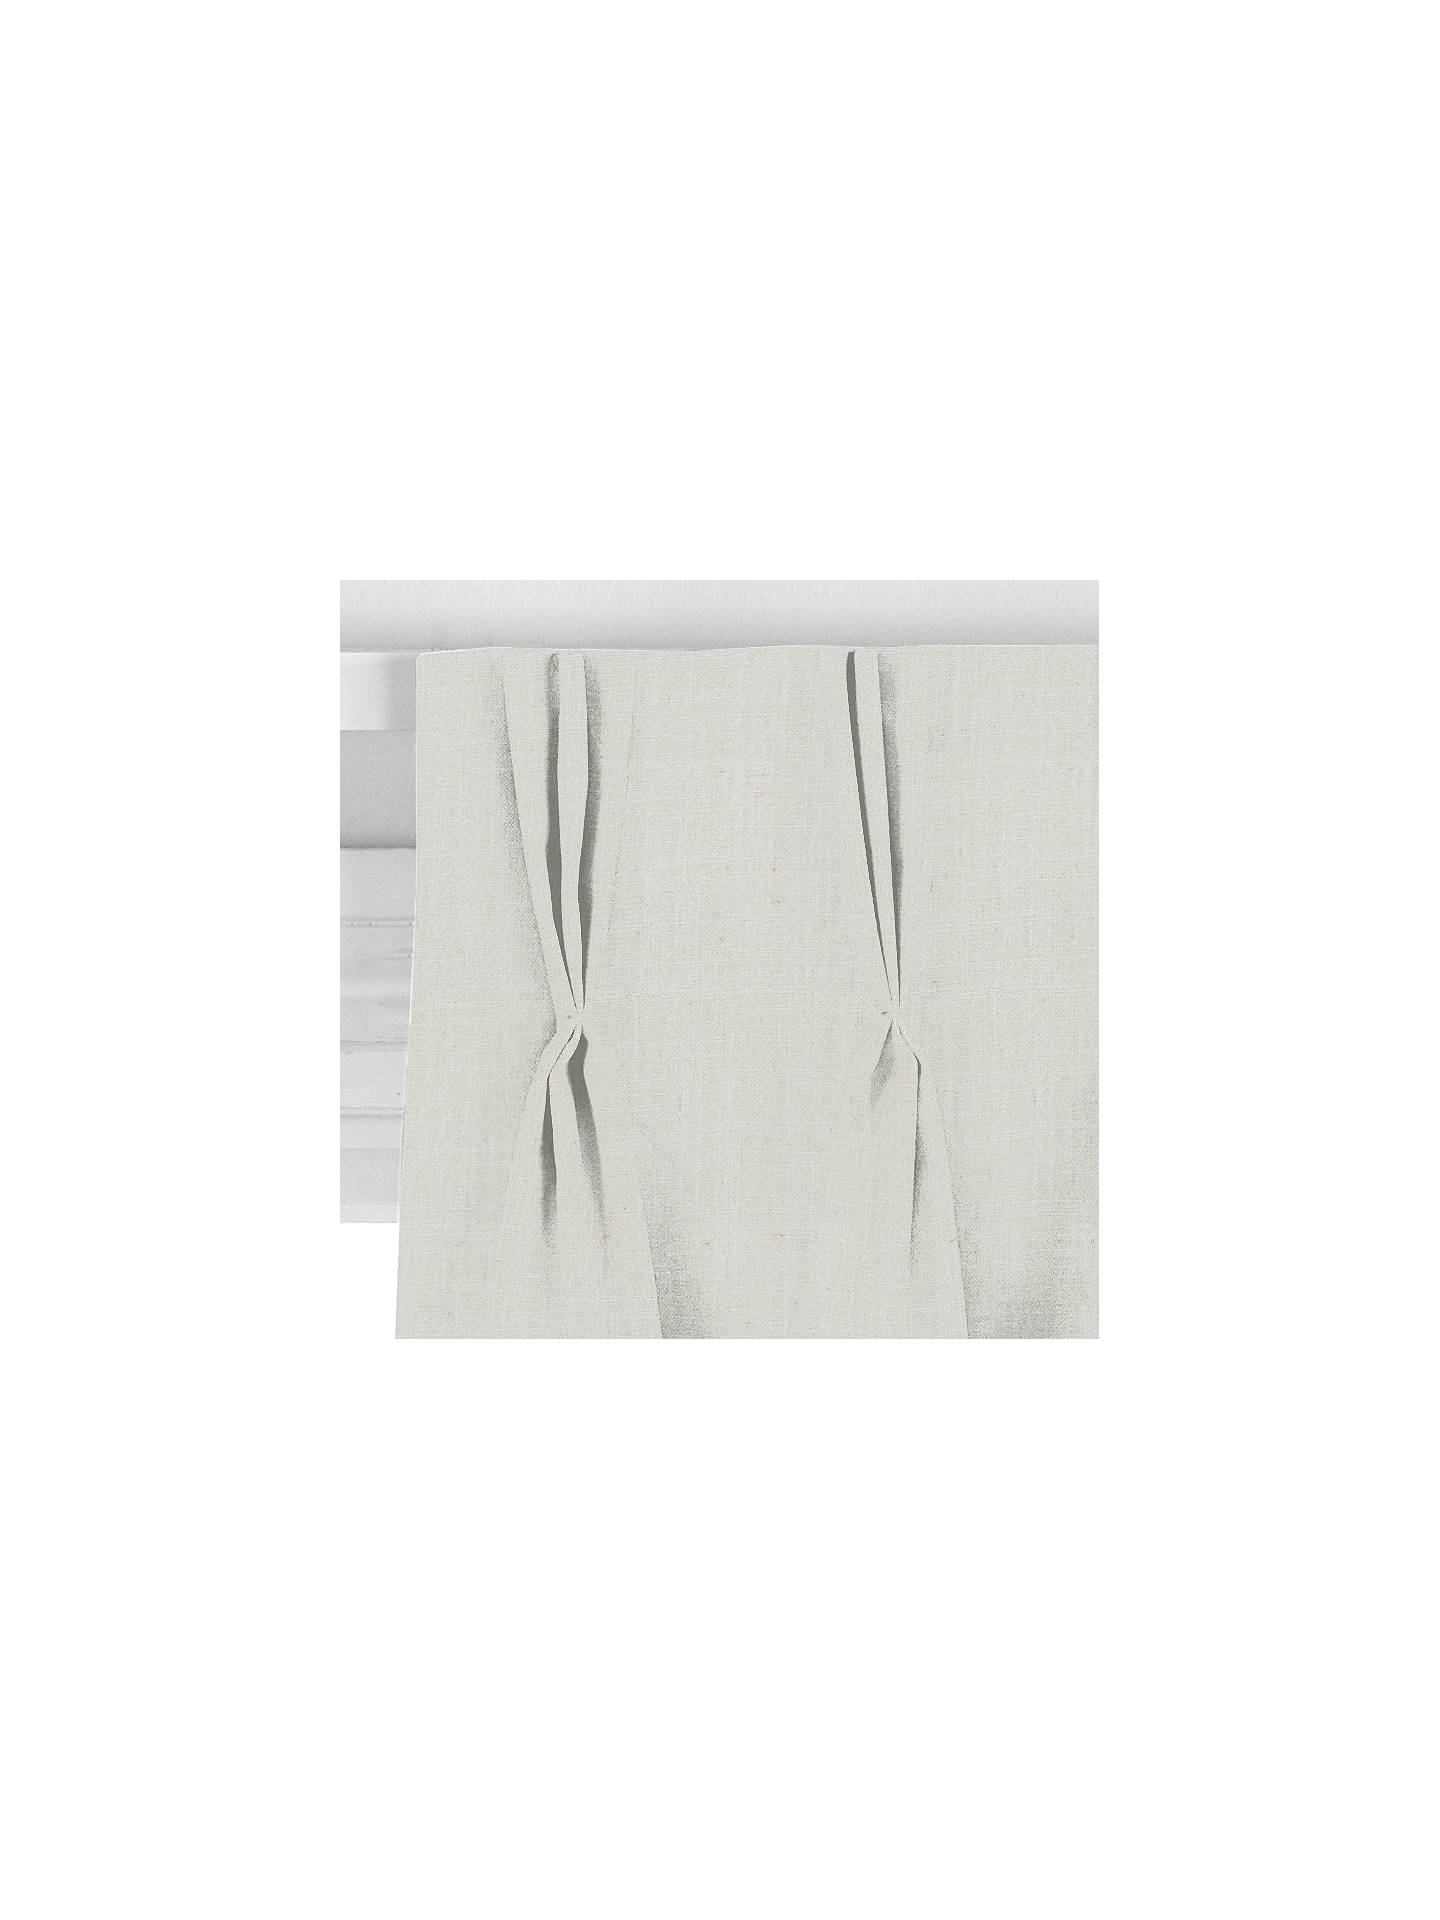 BuyJohn Lewis & Partners Petersham Made to Measure Curtains or Roman Blind, White Online at johnlewis.com